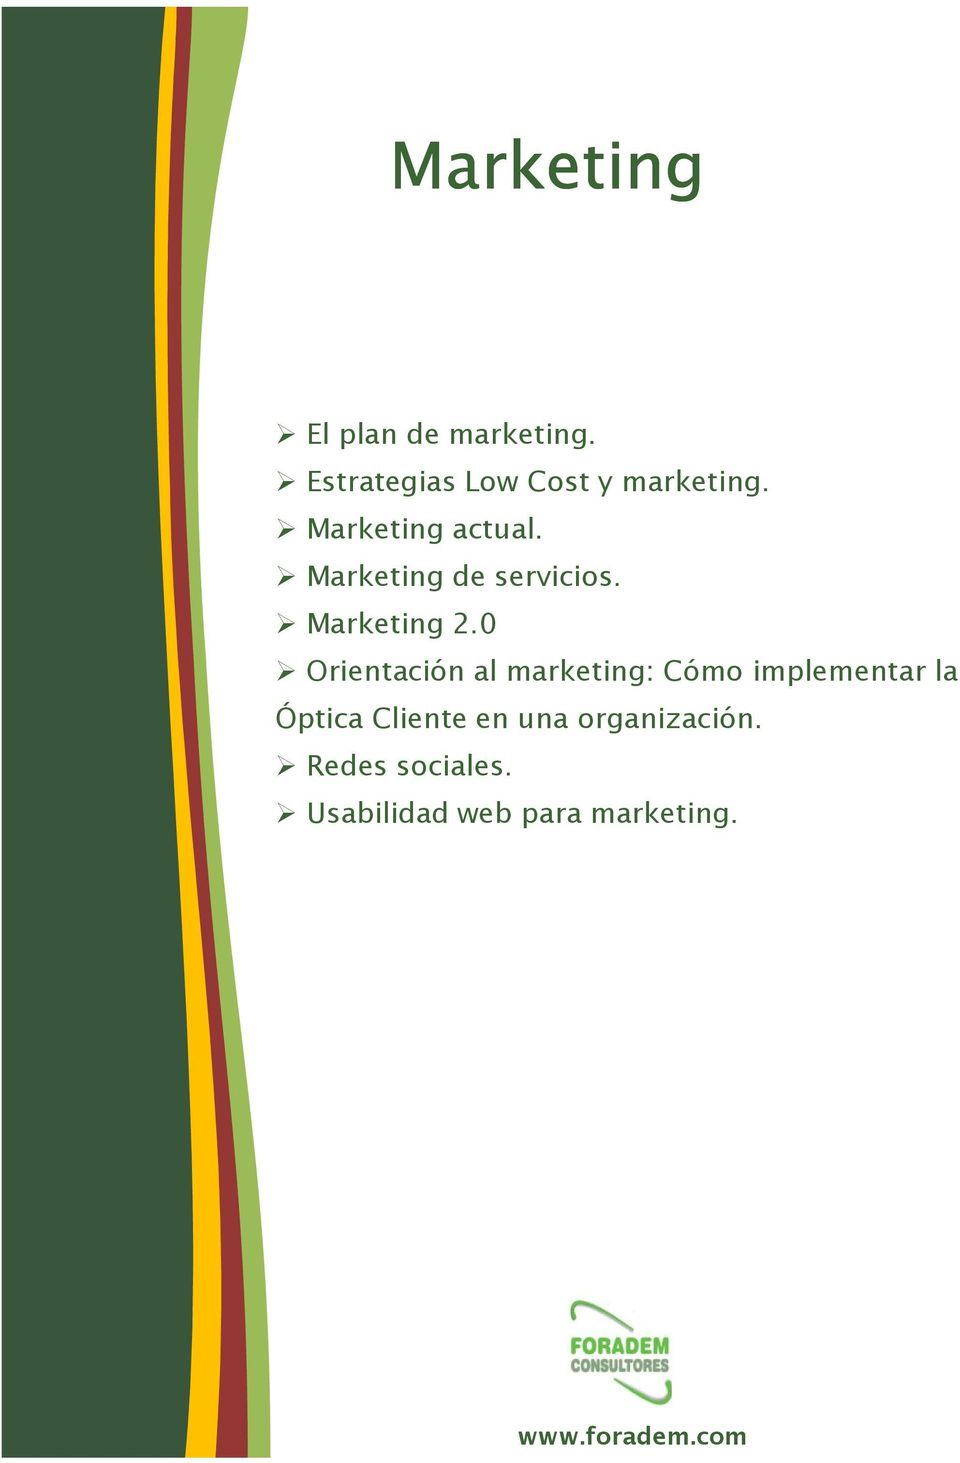 Marketing de servicios. Marketing 2.